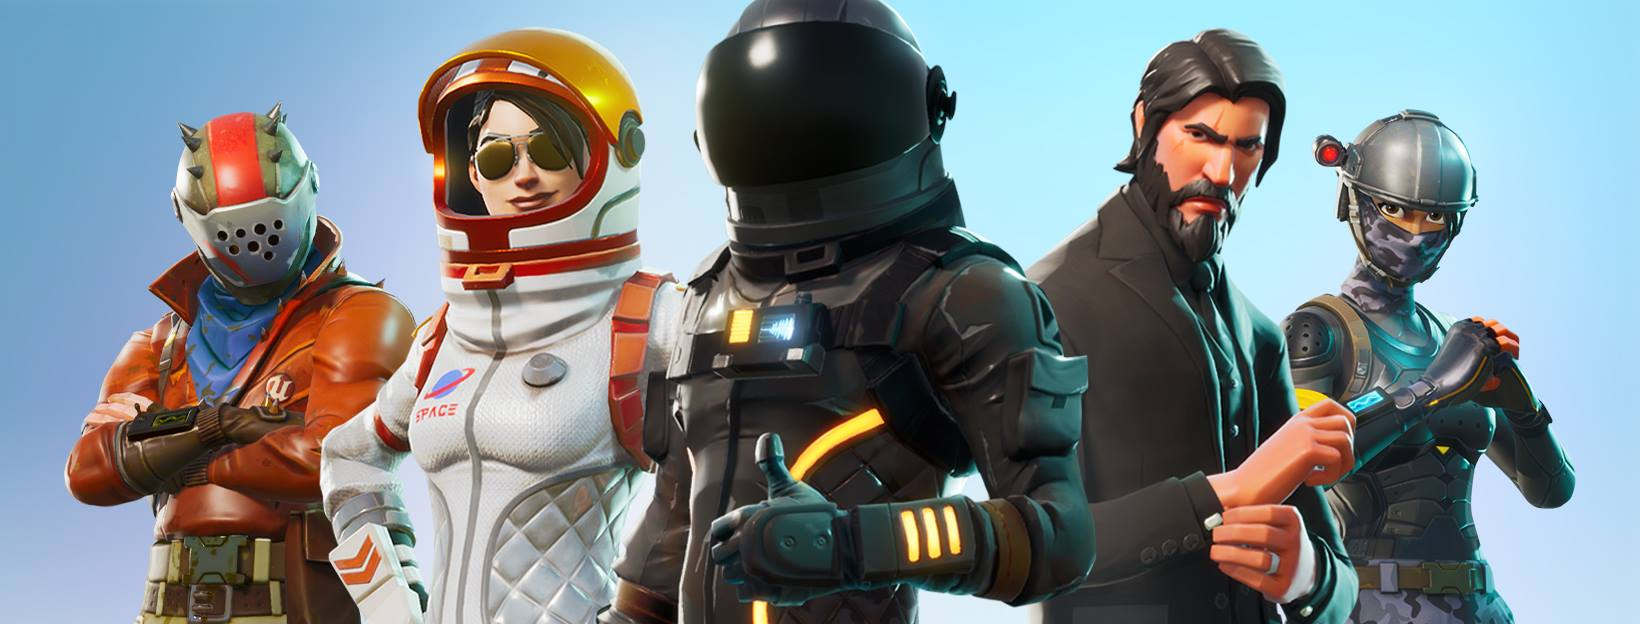 list of android and ios devices compatible with fortnite mobile - fortnite android liste compatible